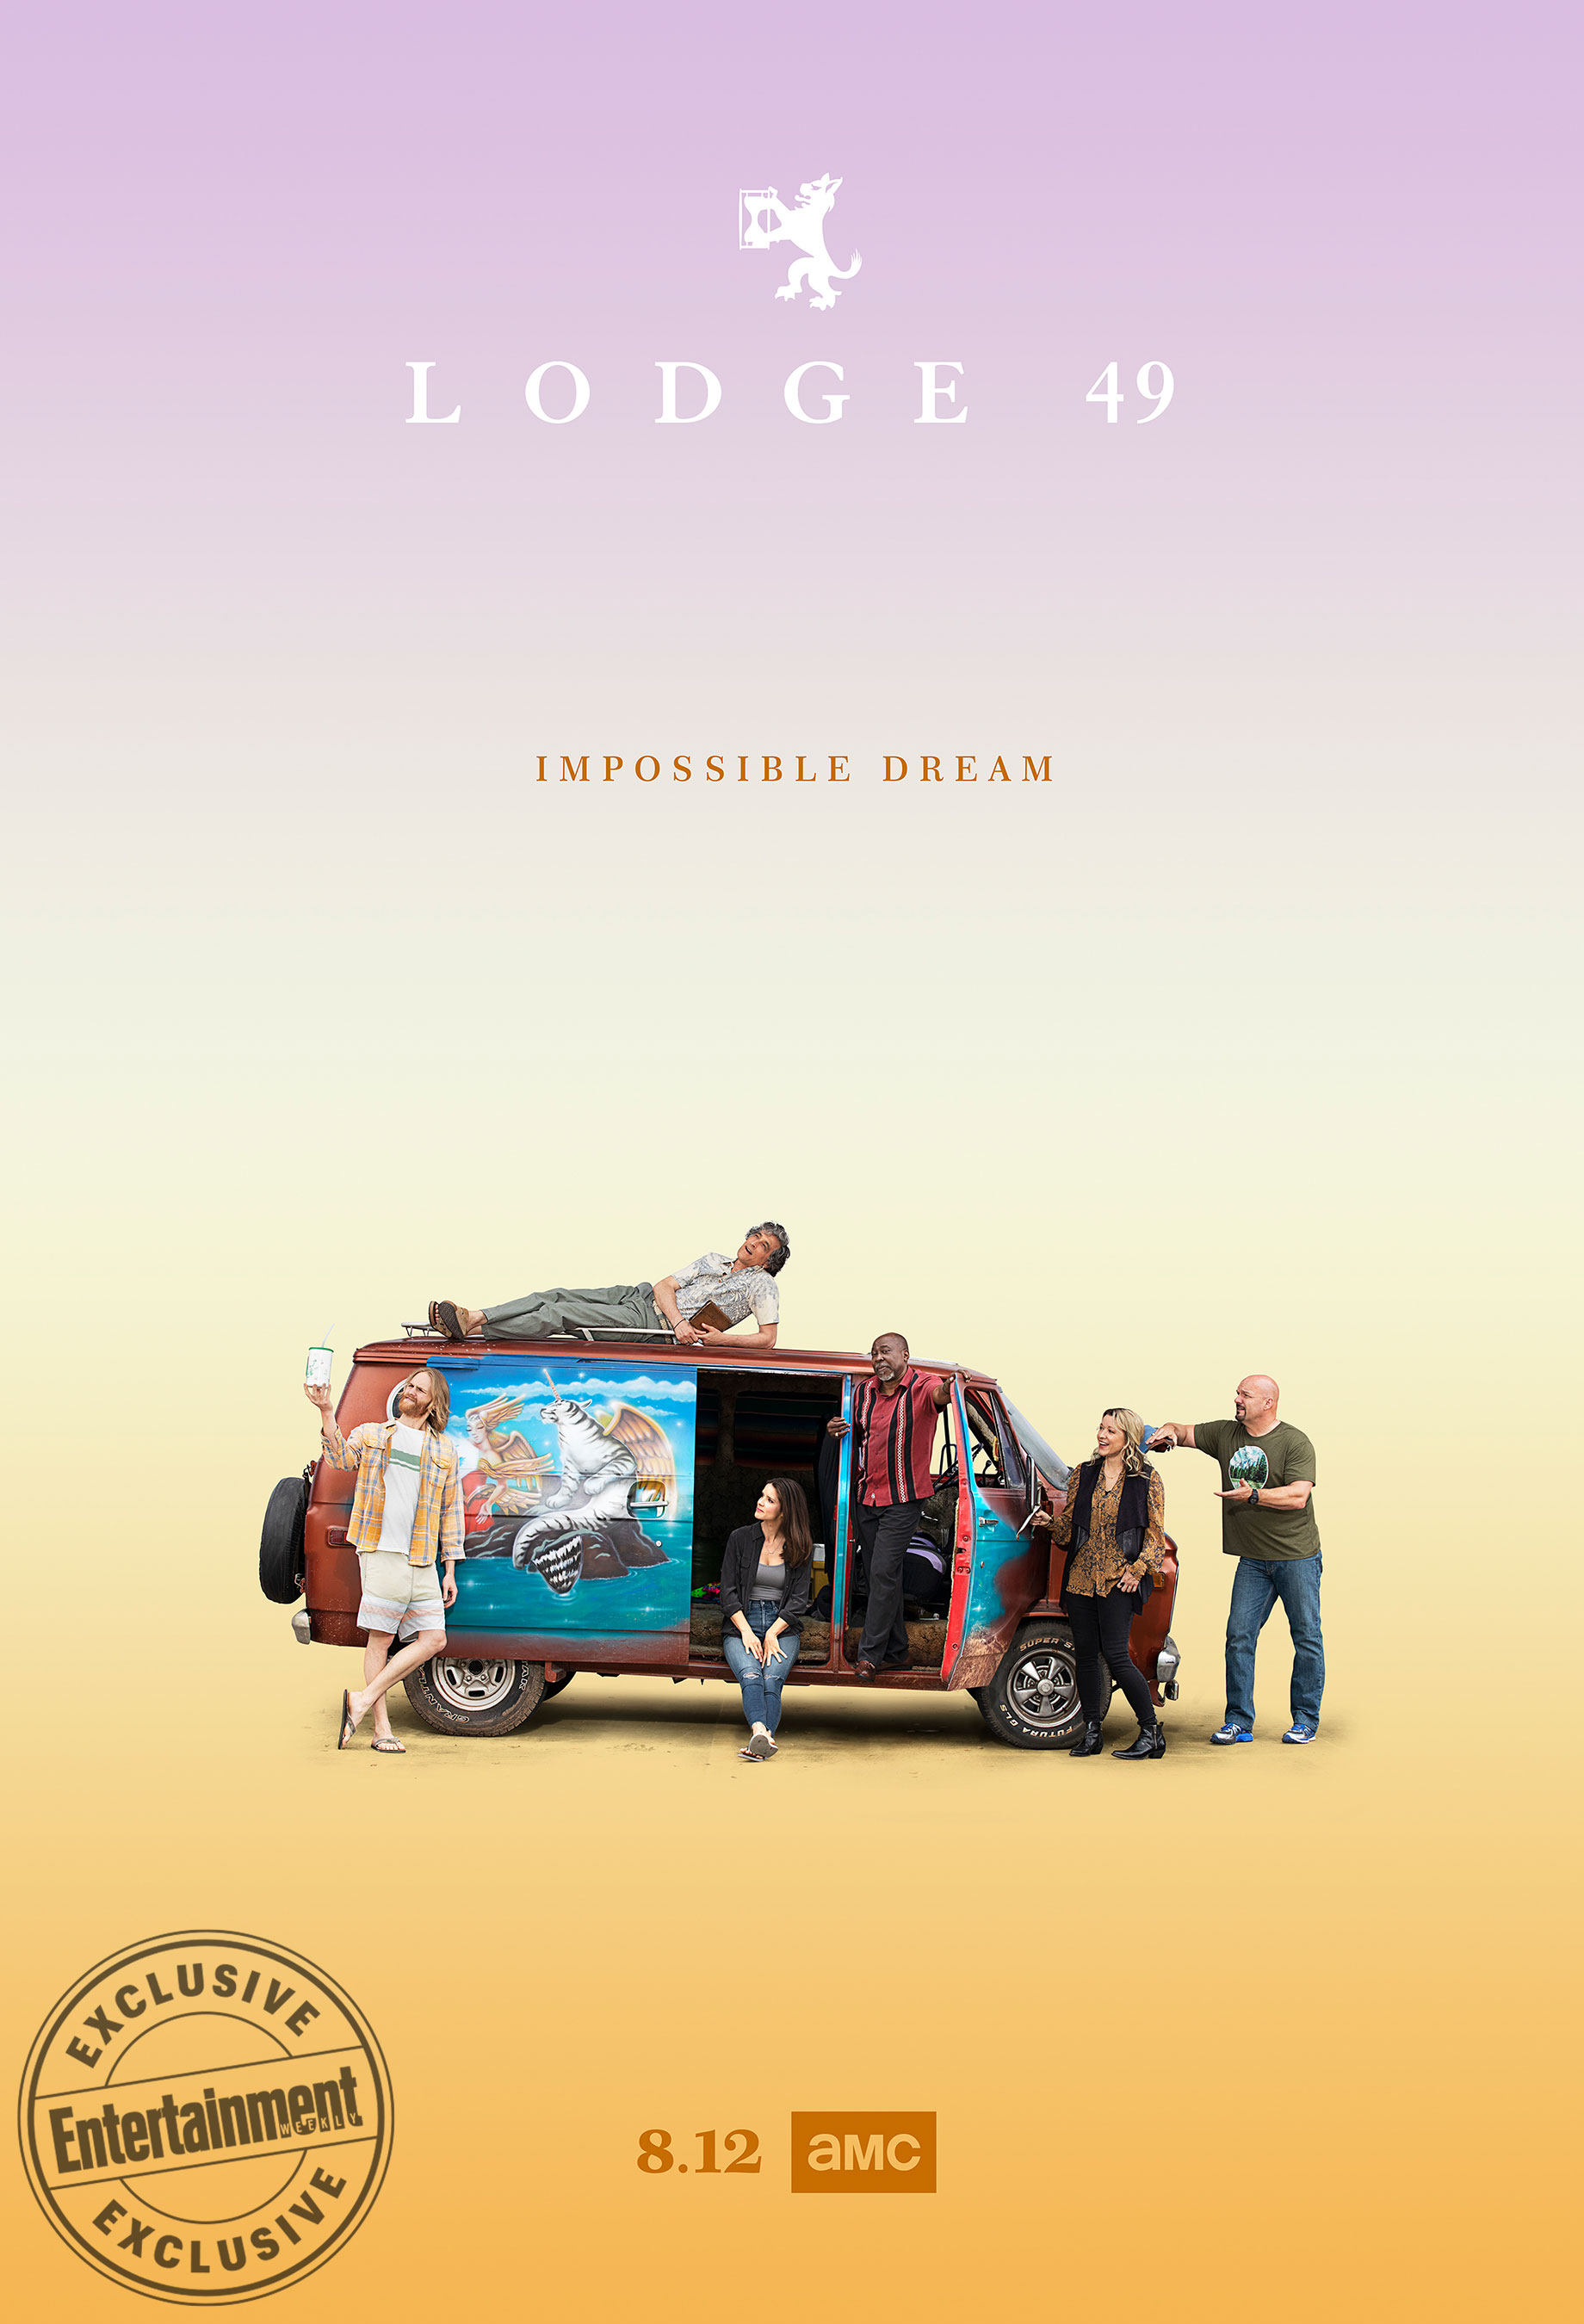 Watch New Teasers from Lodge 49 Season Two | TV News | Consequence of Sound